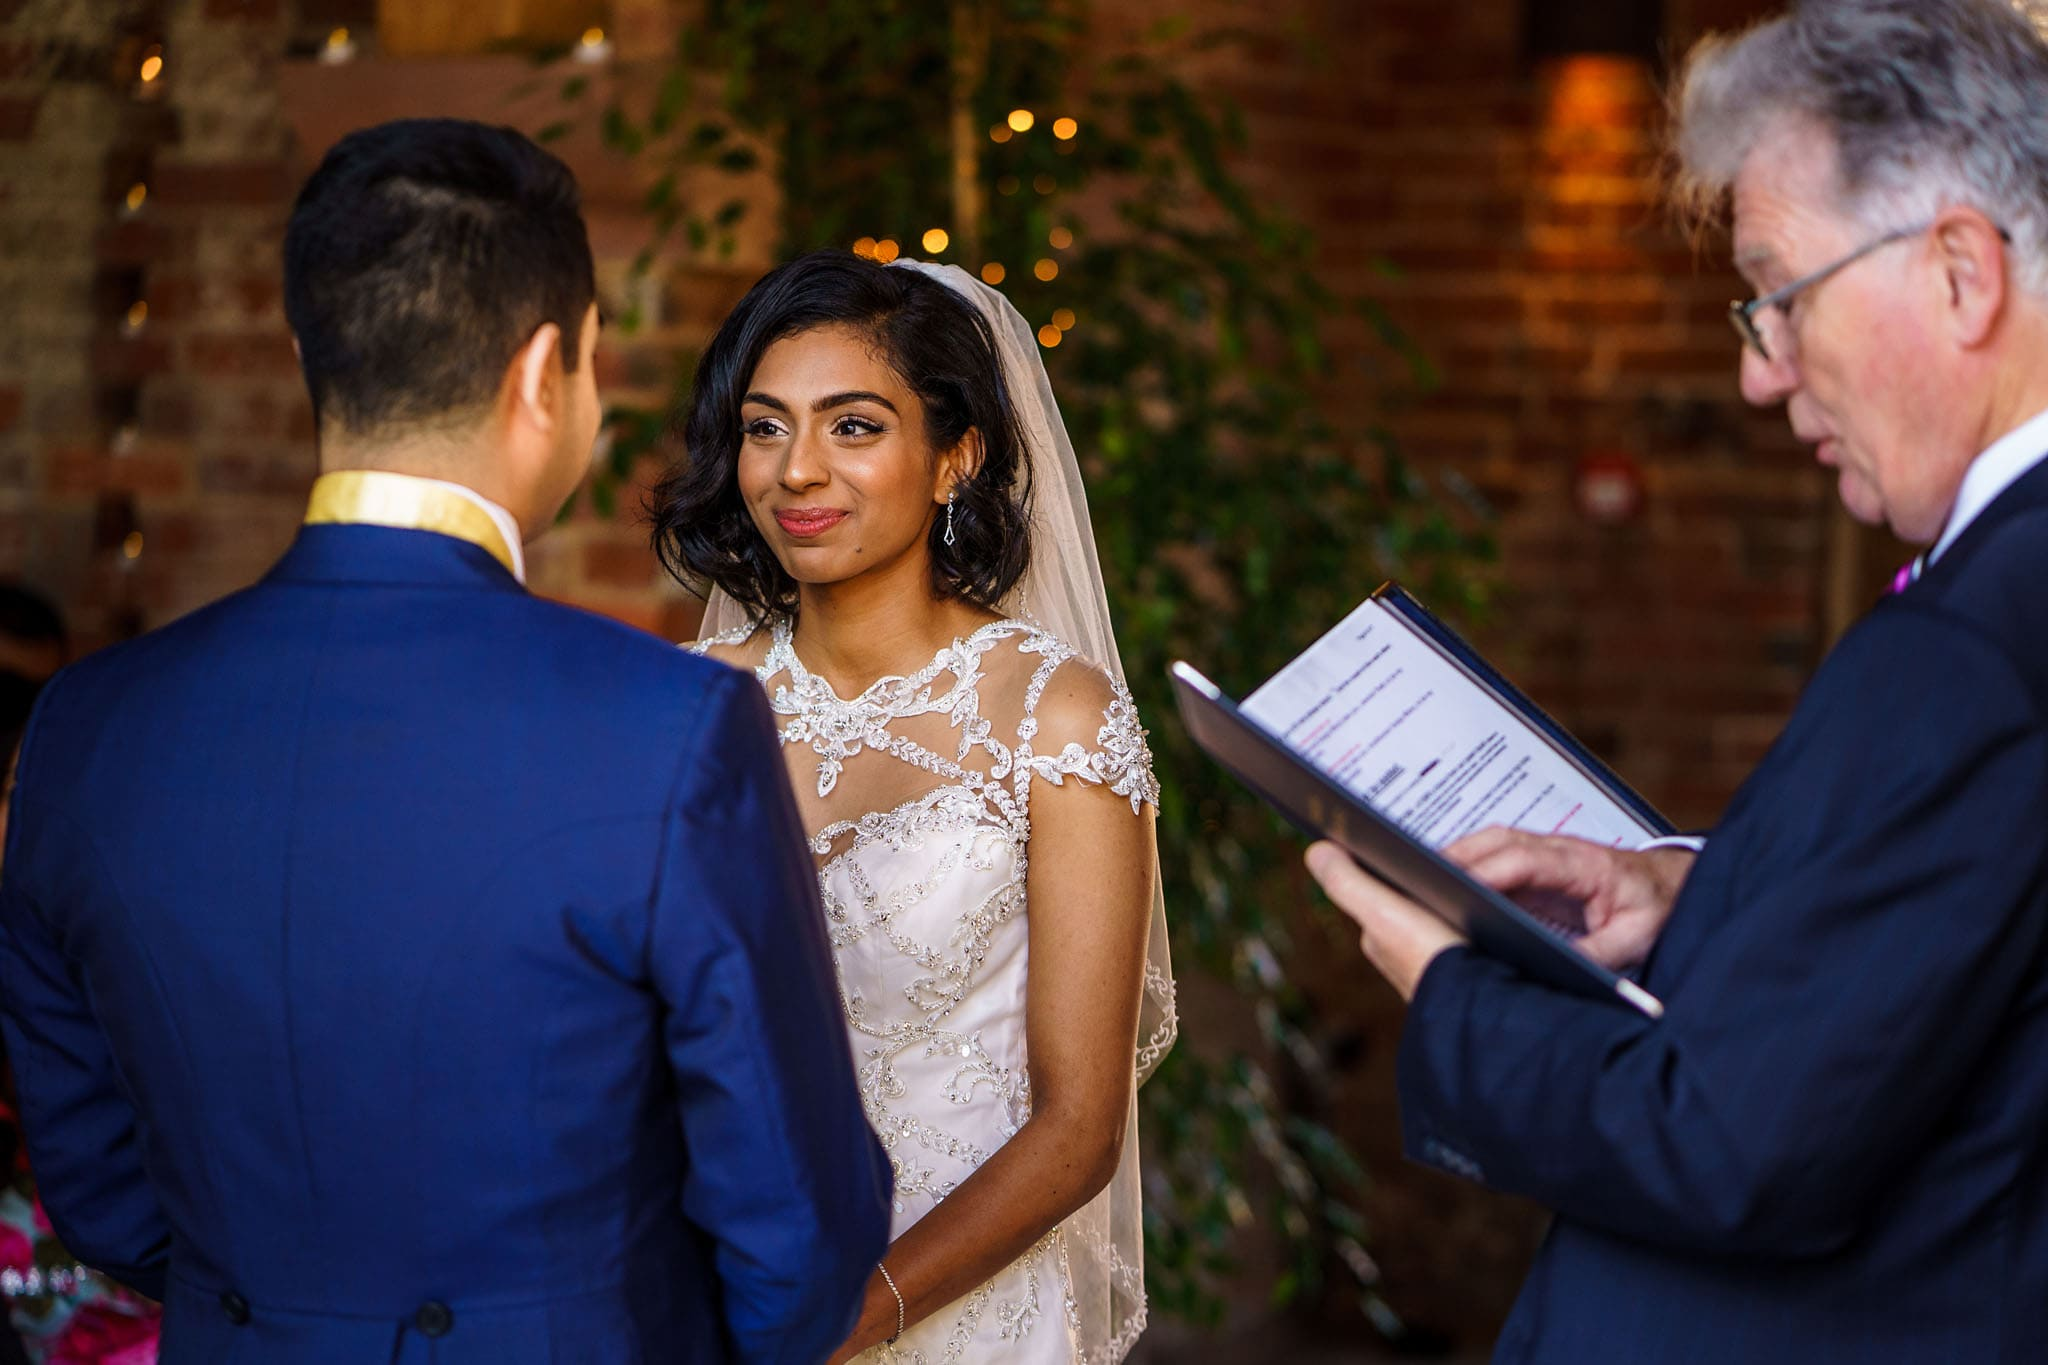 a very happy looking bride smiling at the groom during the ceremony